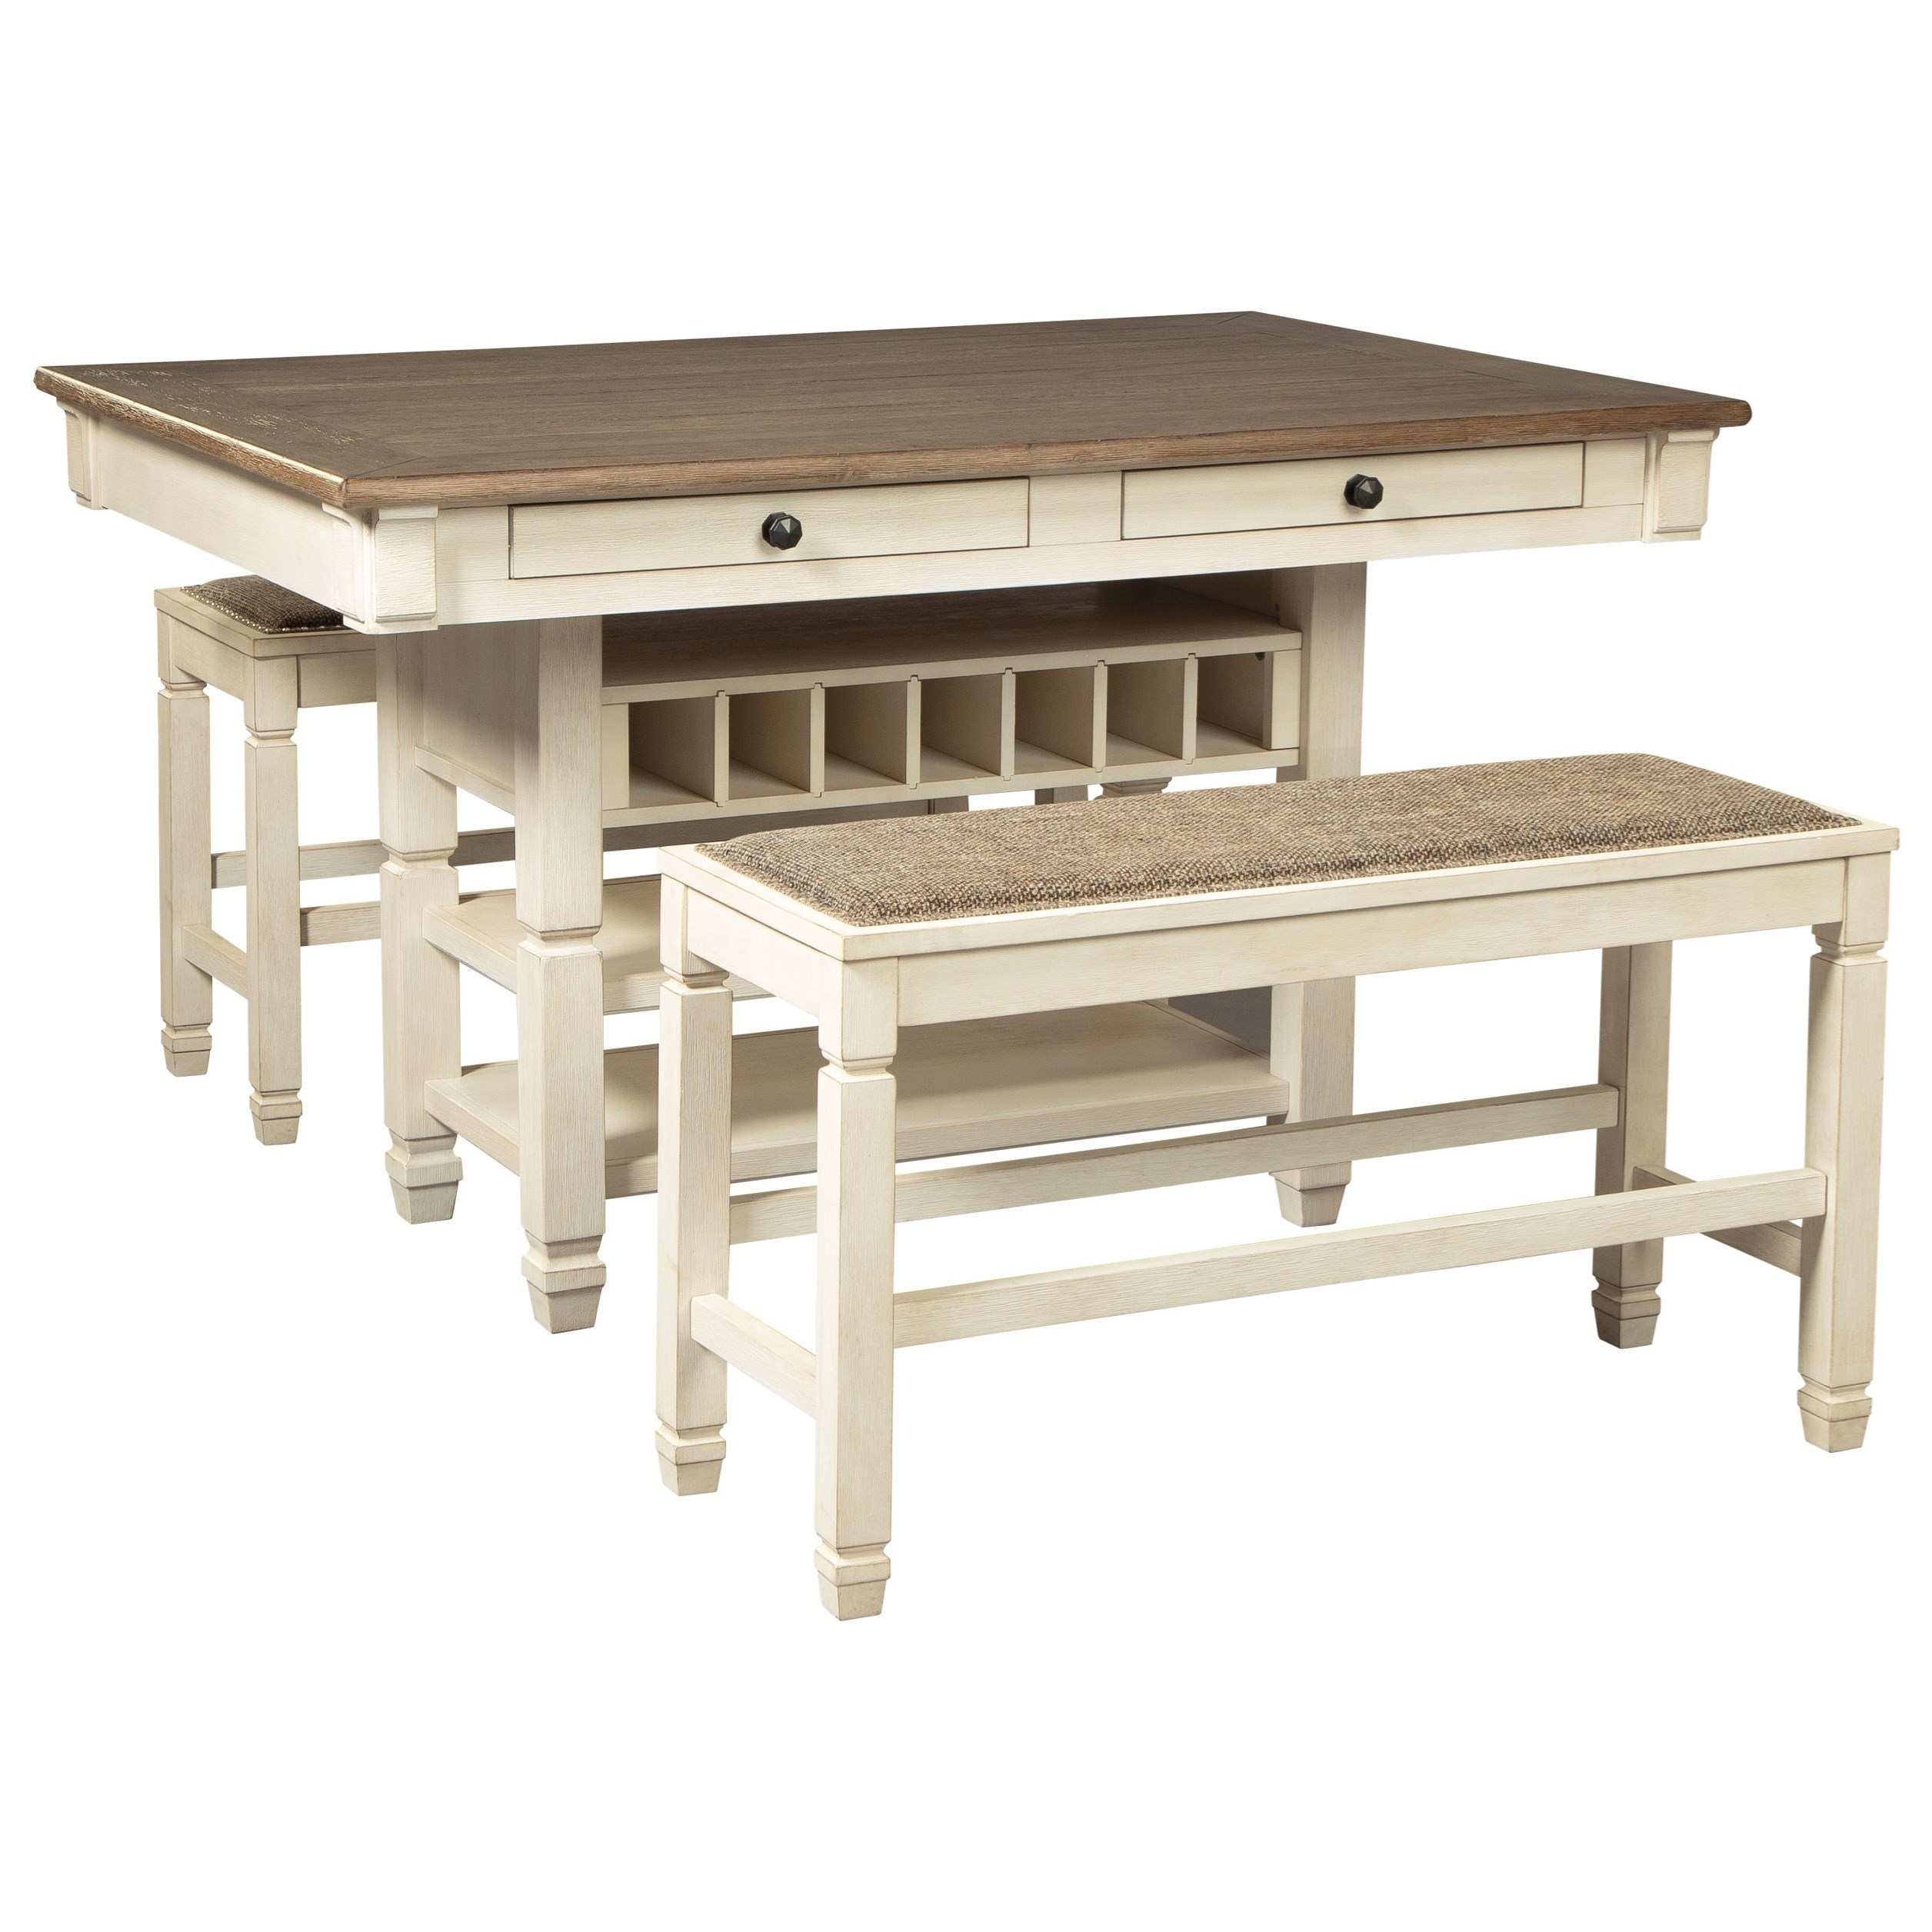 Bolanburg 3-Piece Counter Table and Bench Set by Signature Design by Ashley at Northeast Factory Direct